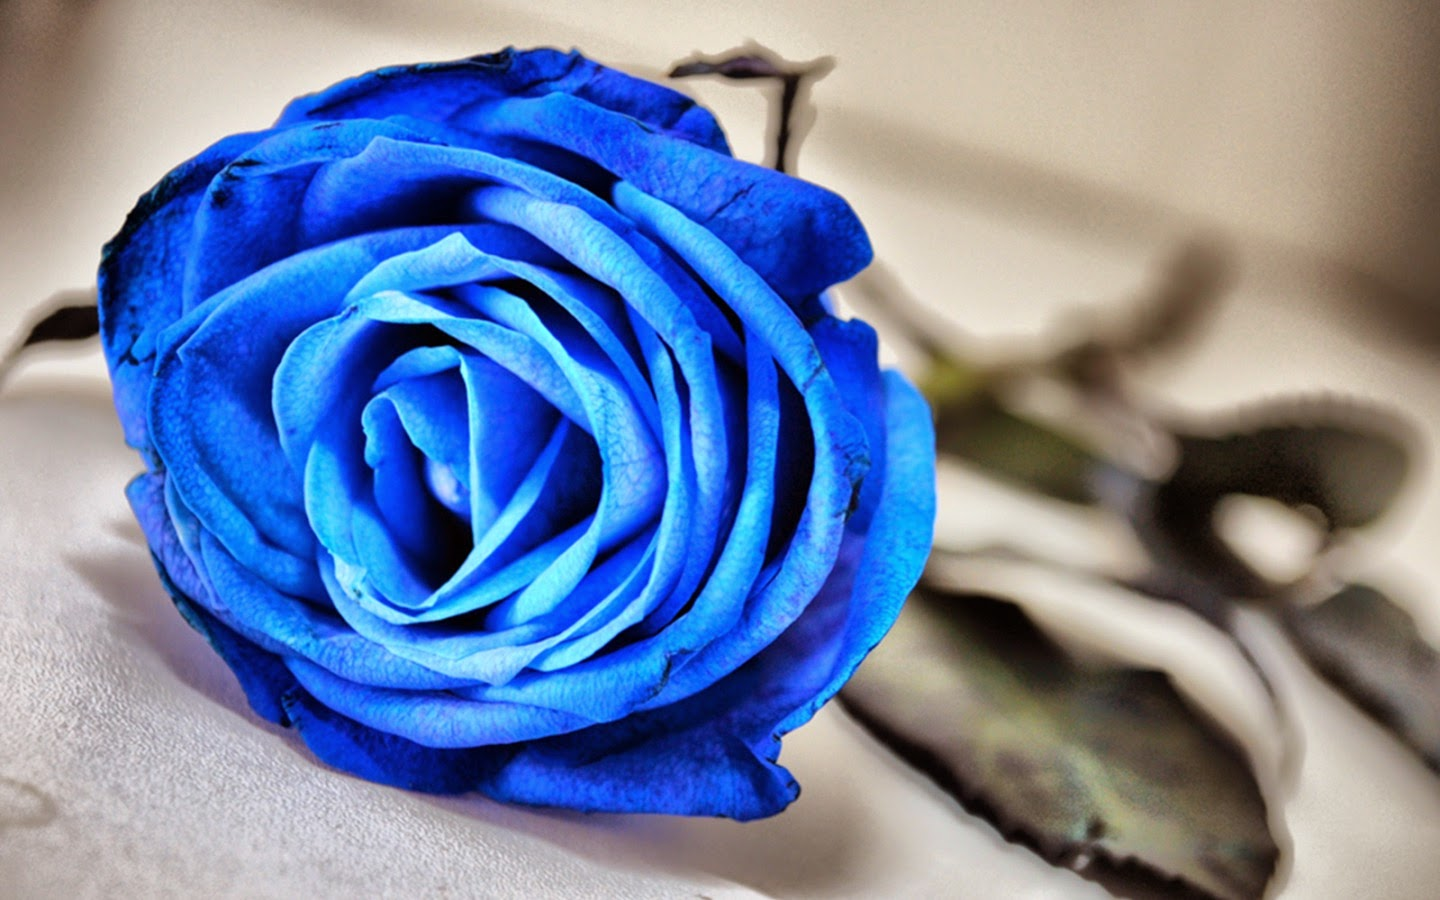 blue roses hd wallpapers free download | free hd wallpapers download